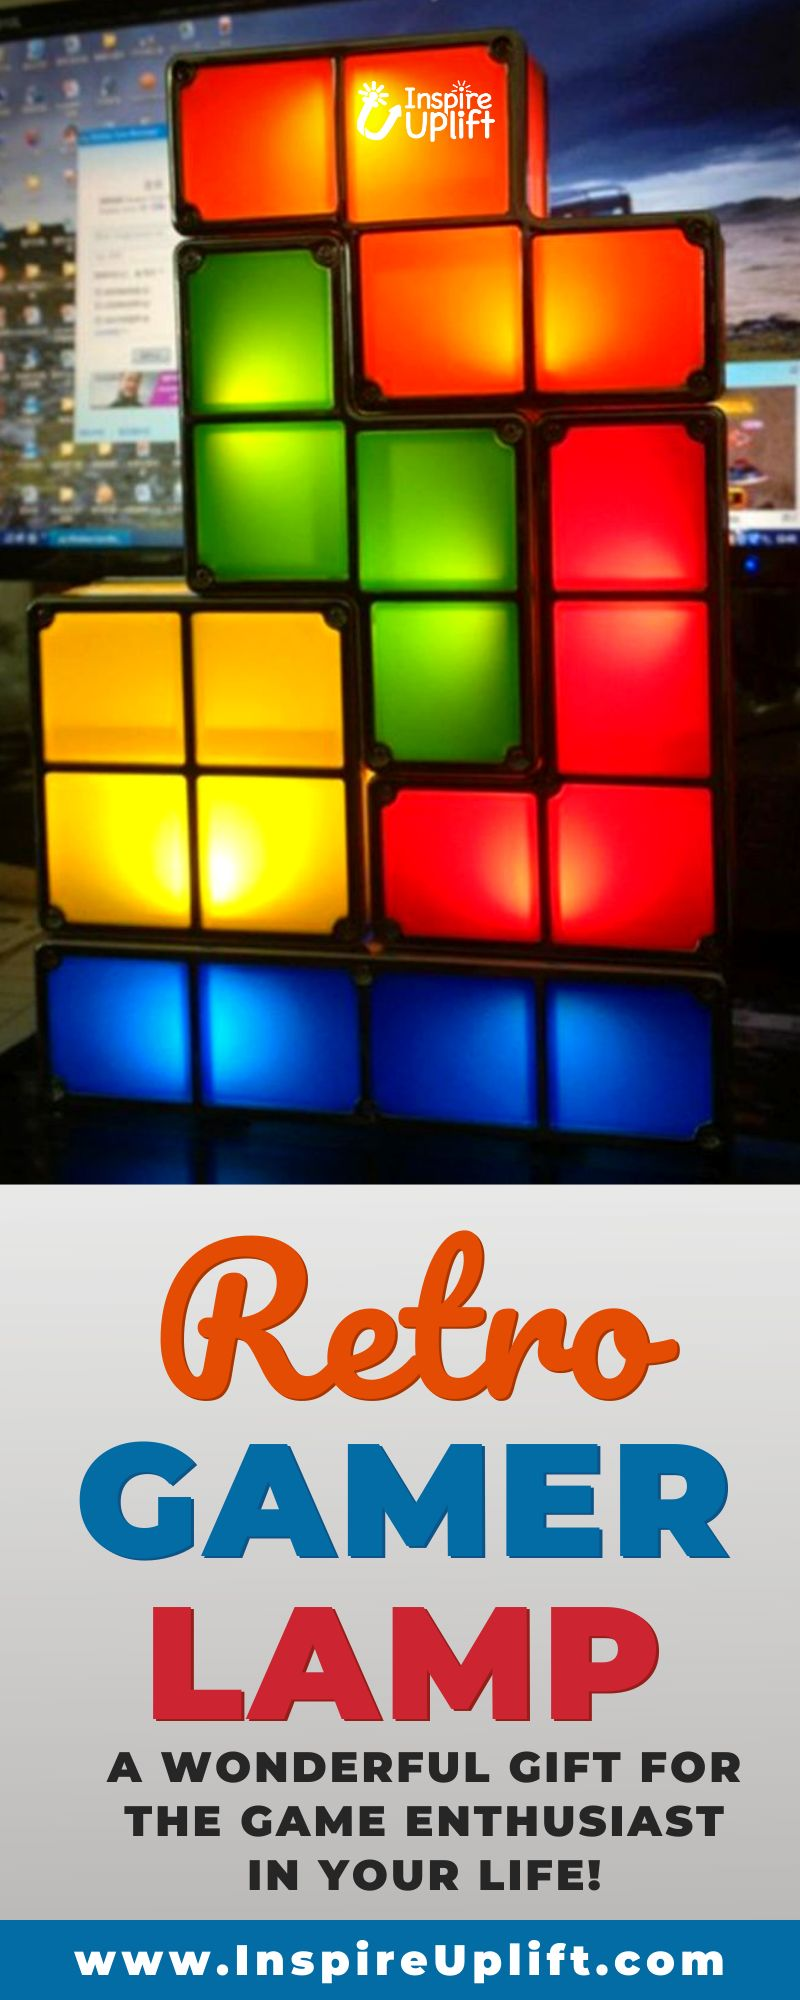 The Retro Gamer Lamp pays tribute to the iconic arcade game. This retro-inspired, home decor accessory is perfect for individuals of all ages, thanks to its geometric and color-infused design.